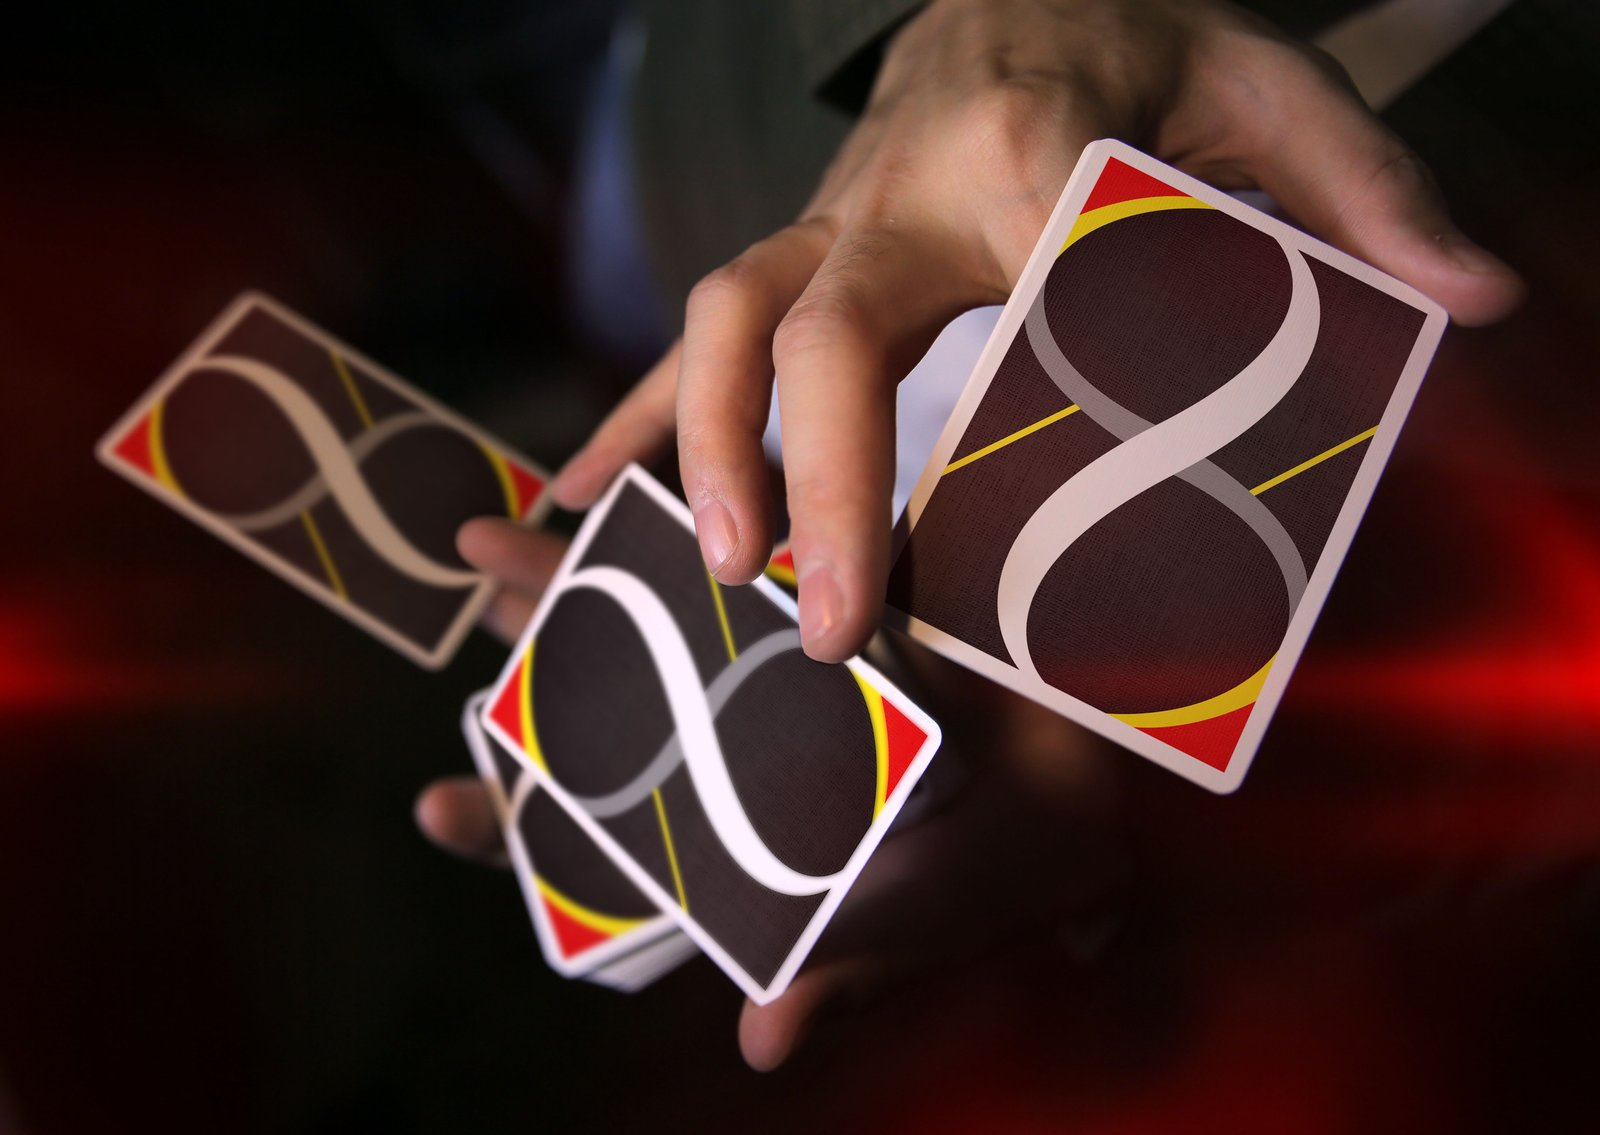 Mobius Playing Cards - Markt 52